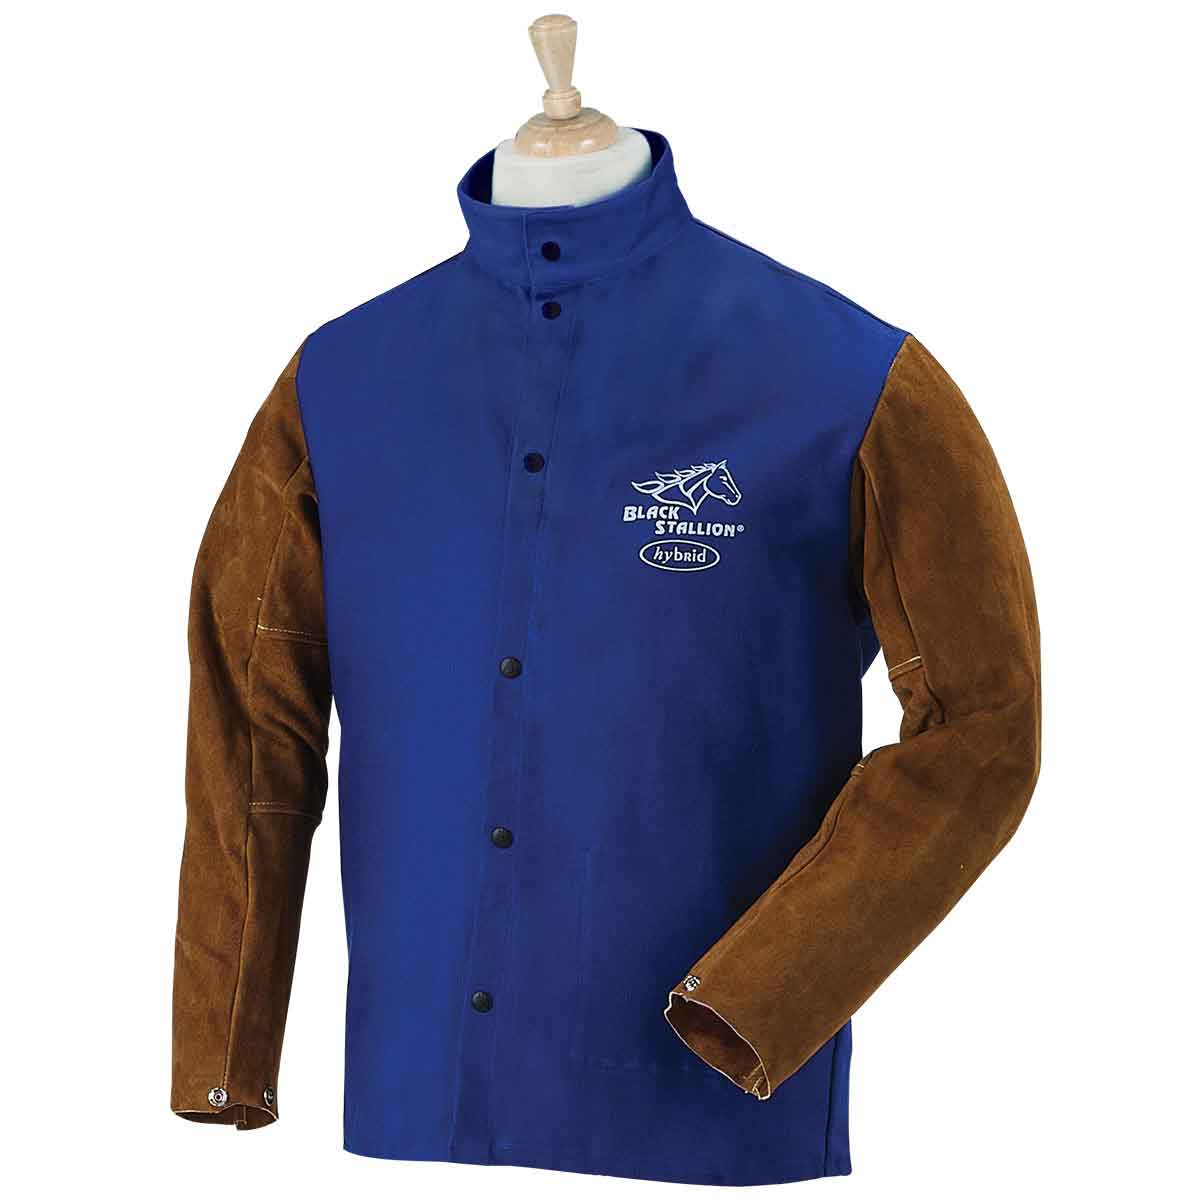 Black Stallion FRB9-30C/BS Hybrid FR Cotton/Cowhide Welding Jacket, Royal Blue, Medium